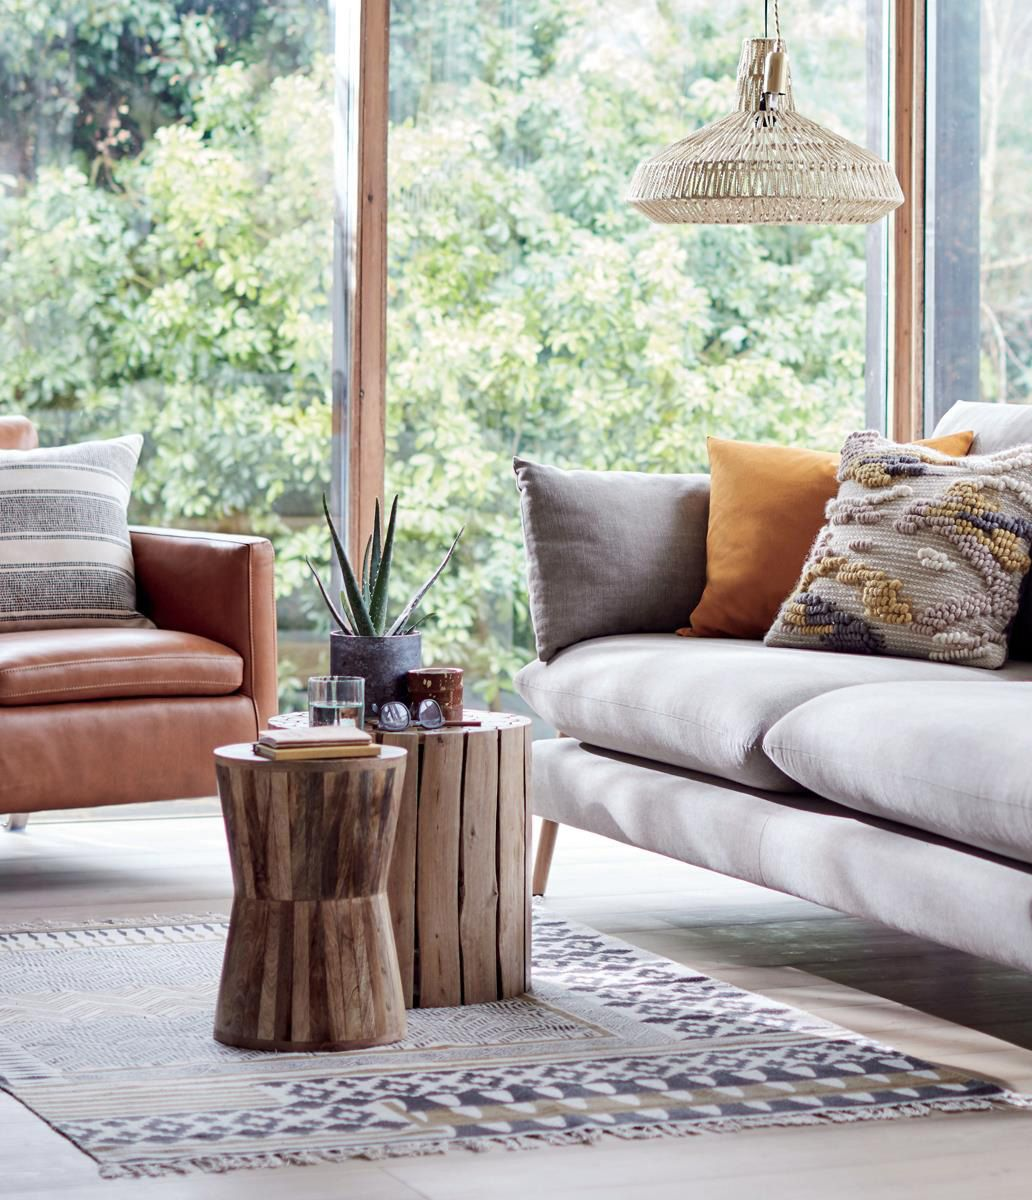 Blend Wood And Fabrics For A Stylish Living Room Scheme With A Rustic Twist Here Burnt Orange In 2020 Sofa Buying Guide Luxury Living Room Decor Stylish Living Room